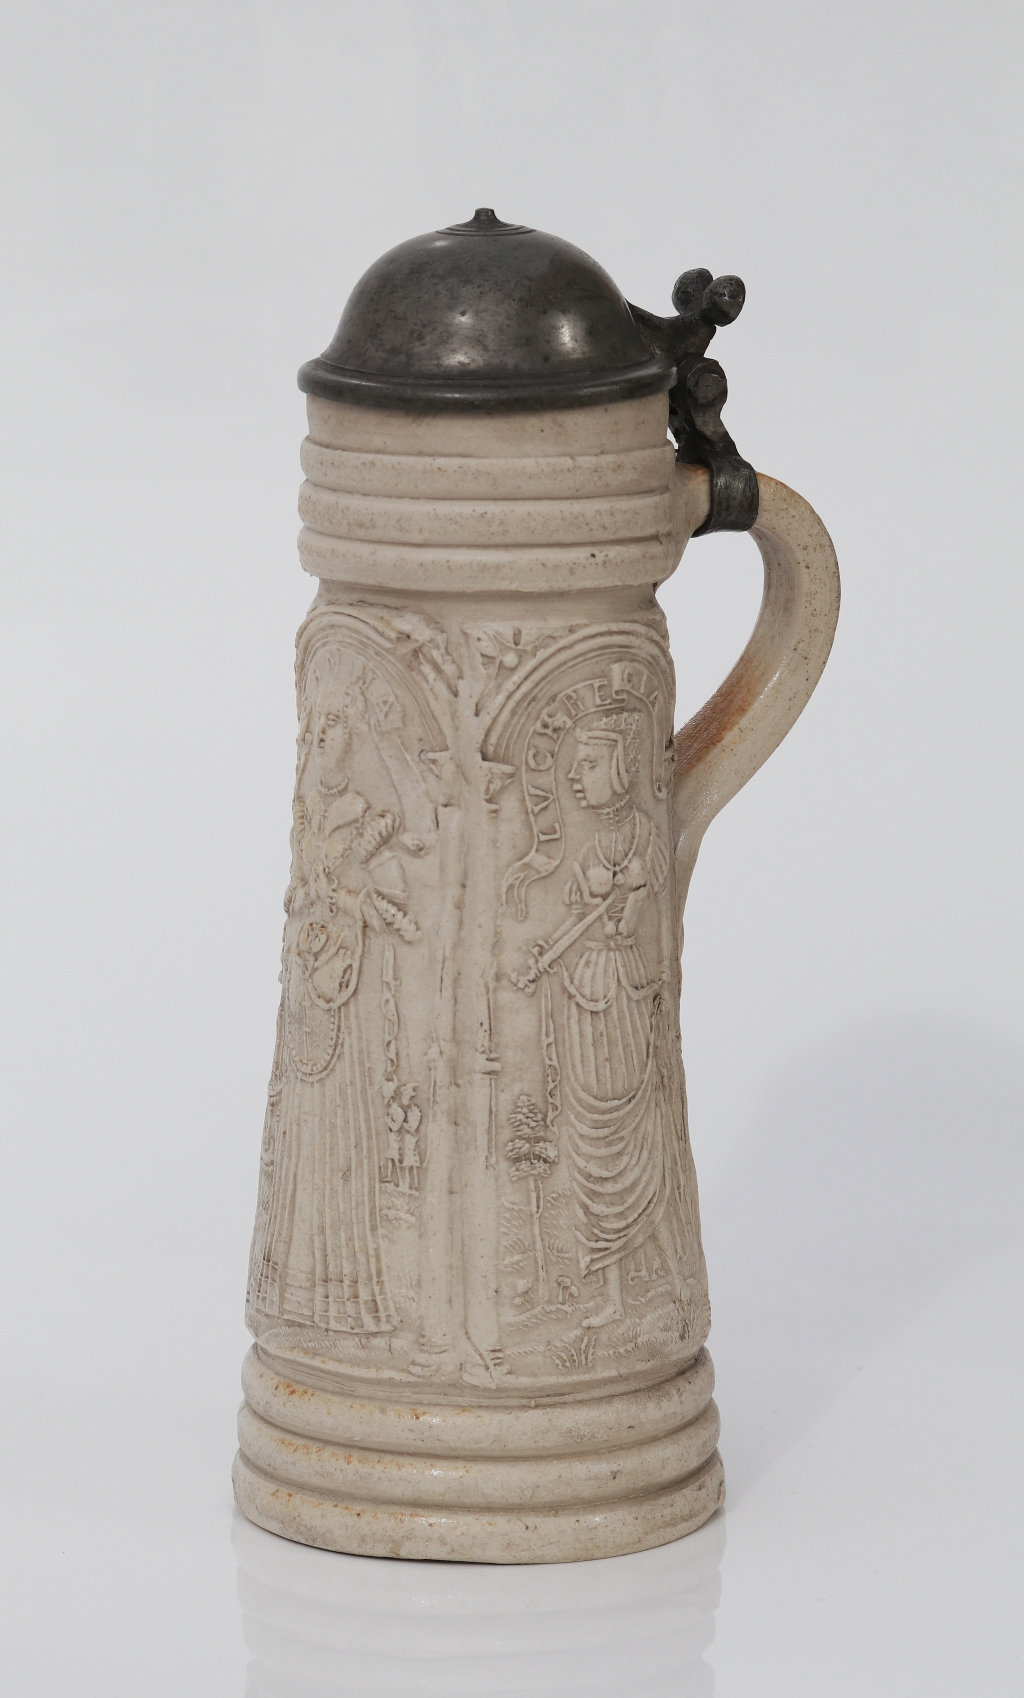 16th century stoneware Siegburg Flagon date 1565 with applied reliefs